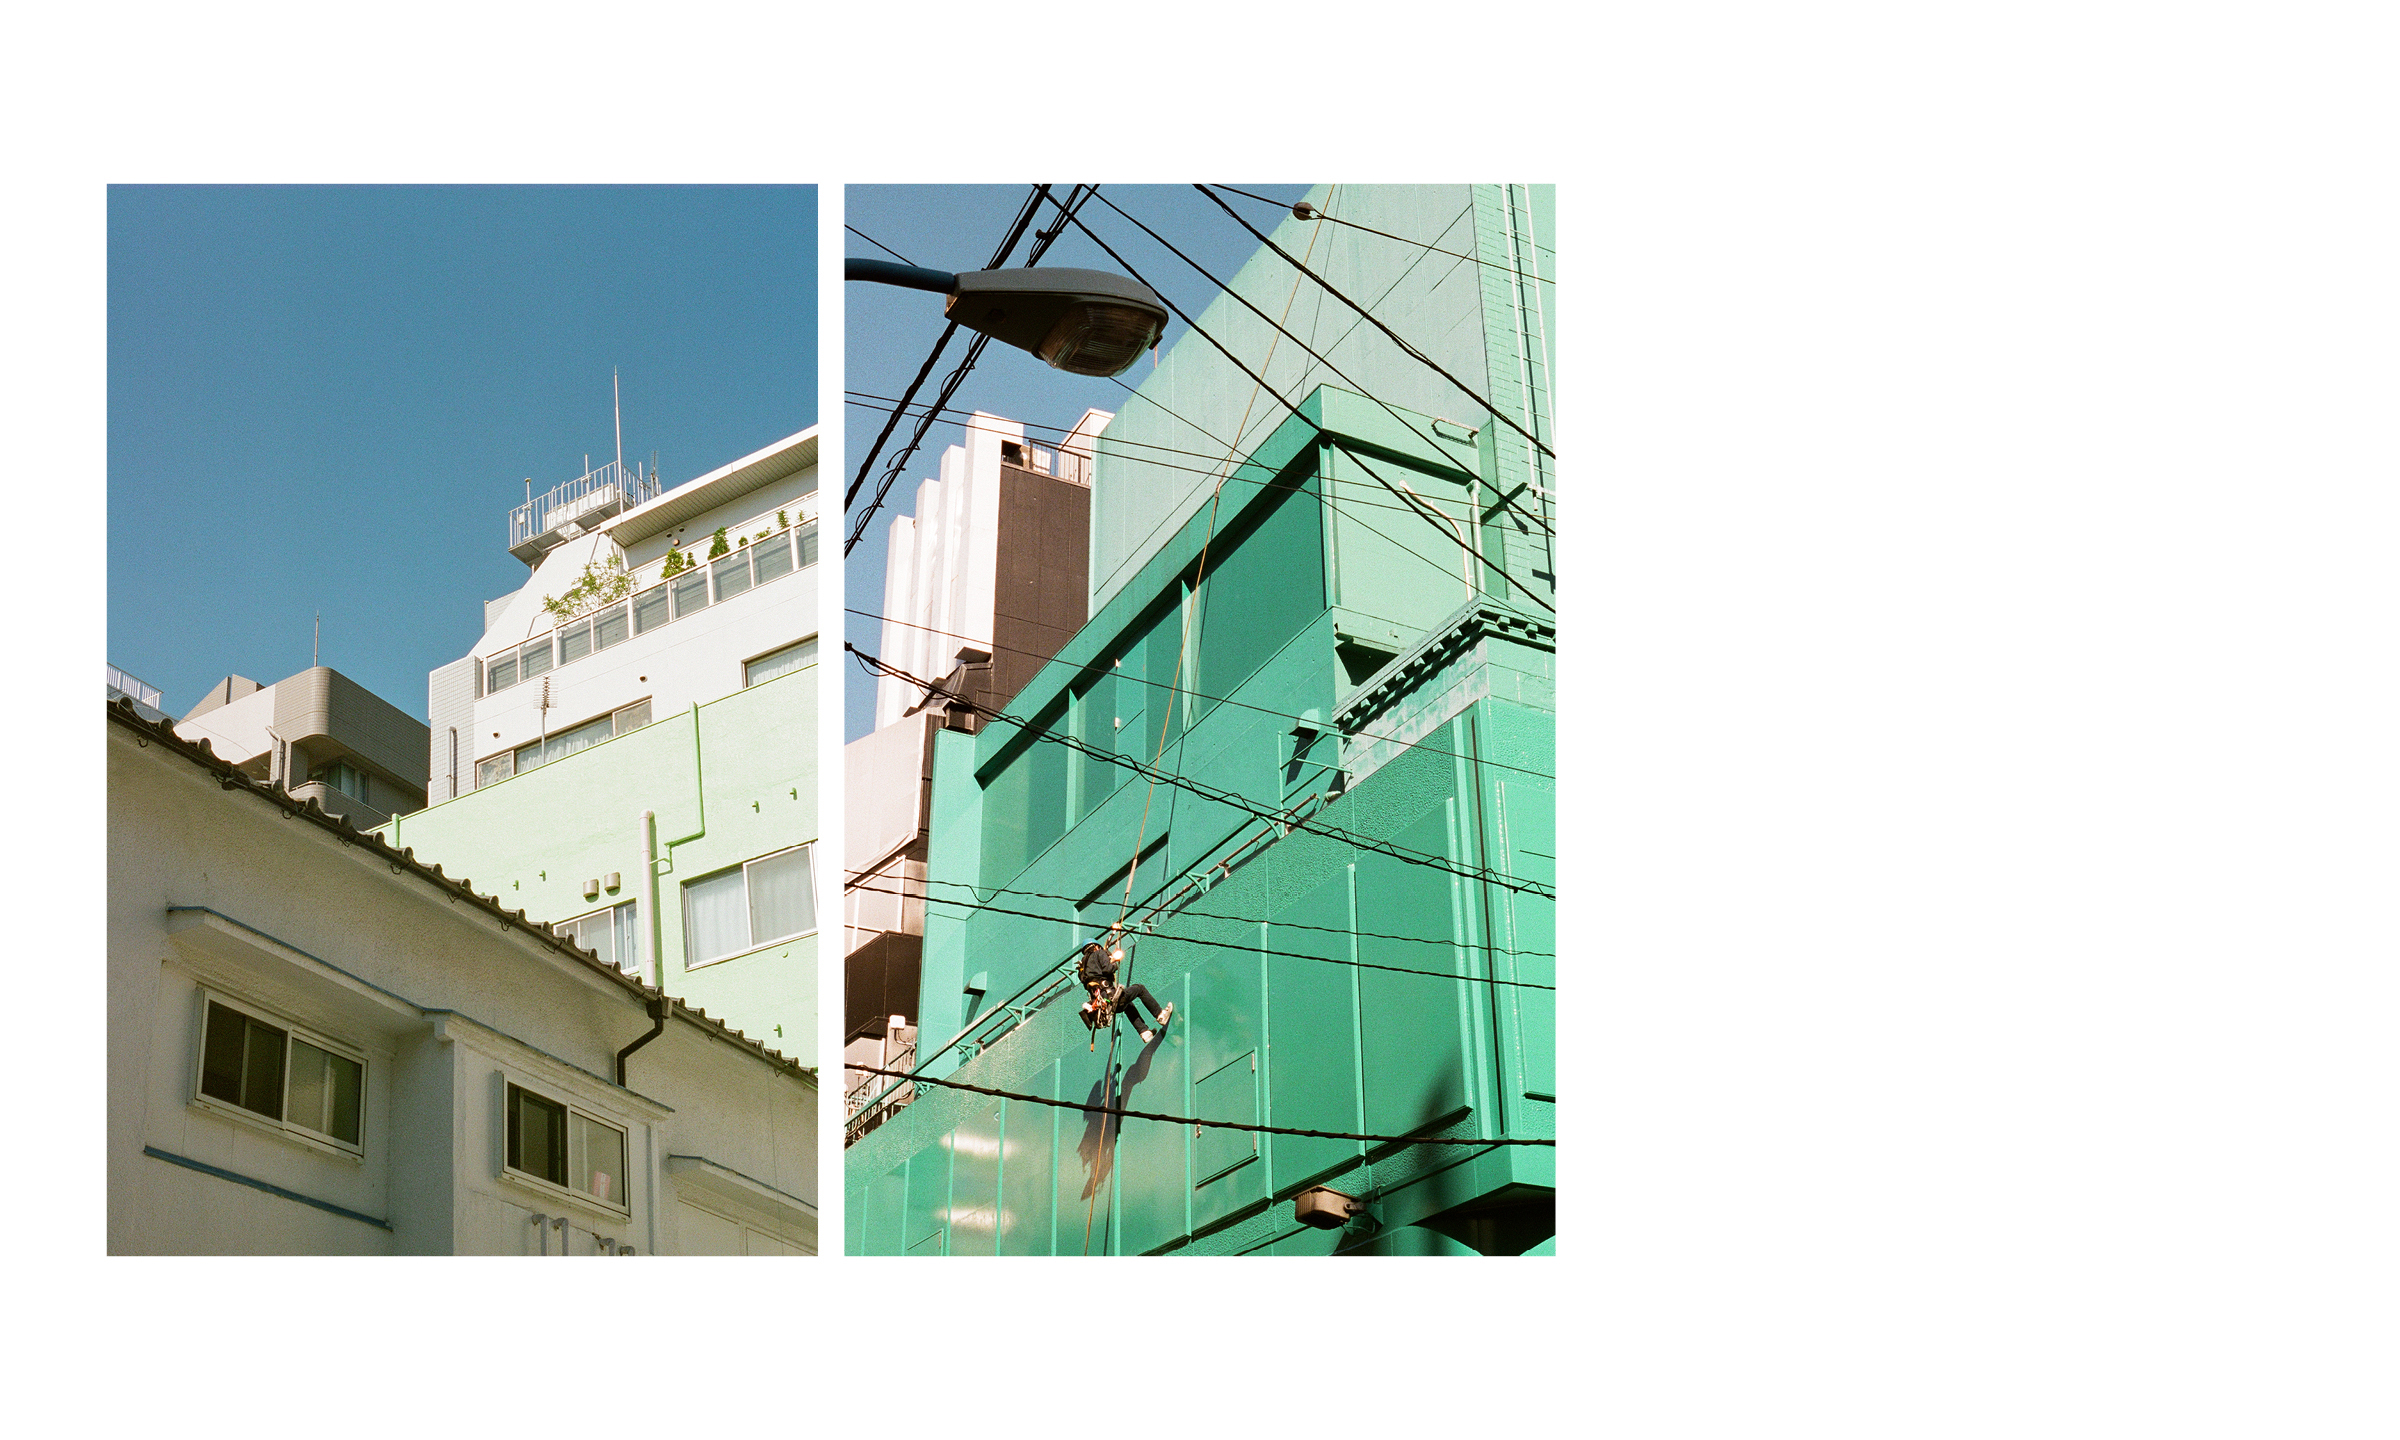 Tokyo_Photography_Case_Study_Layout11.jpg